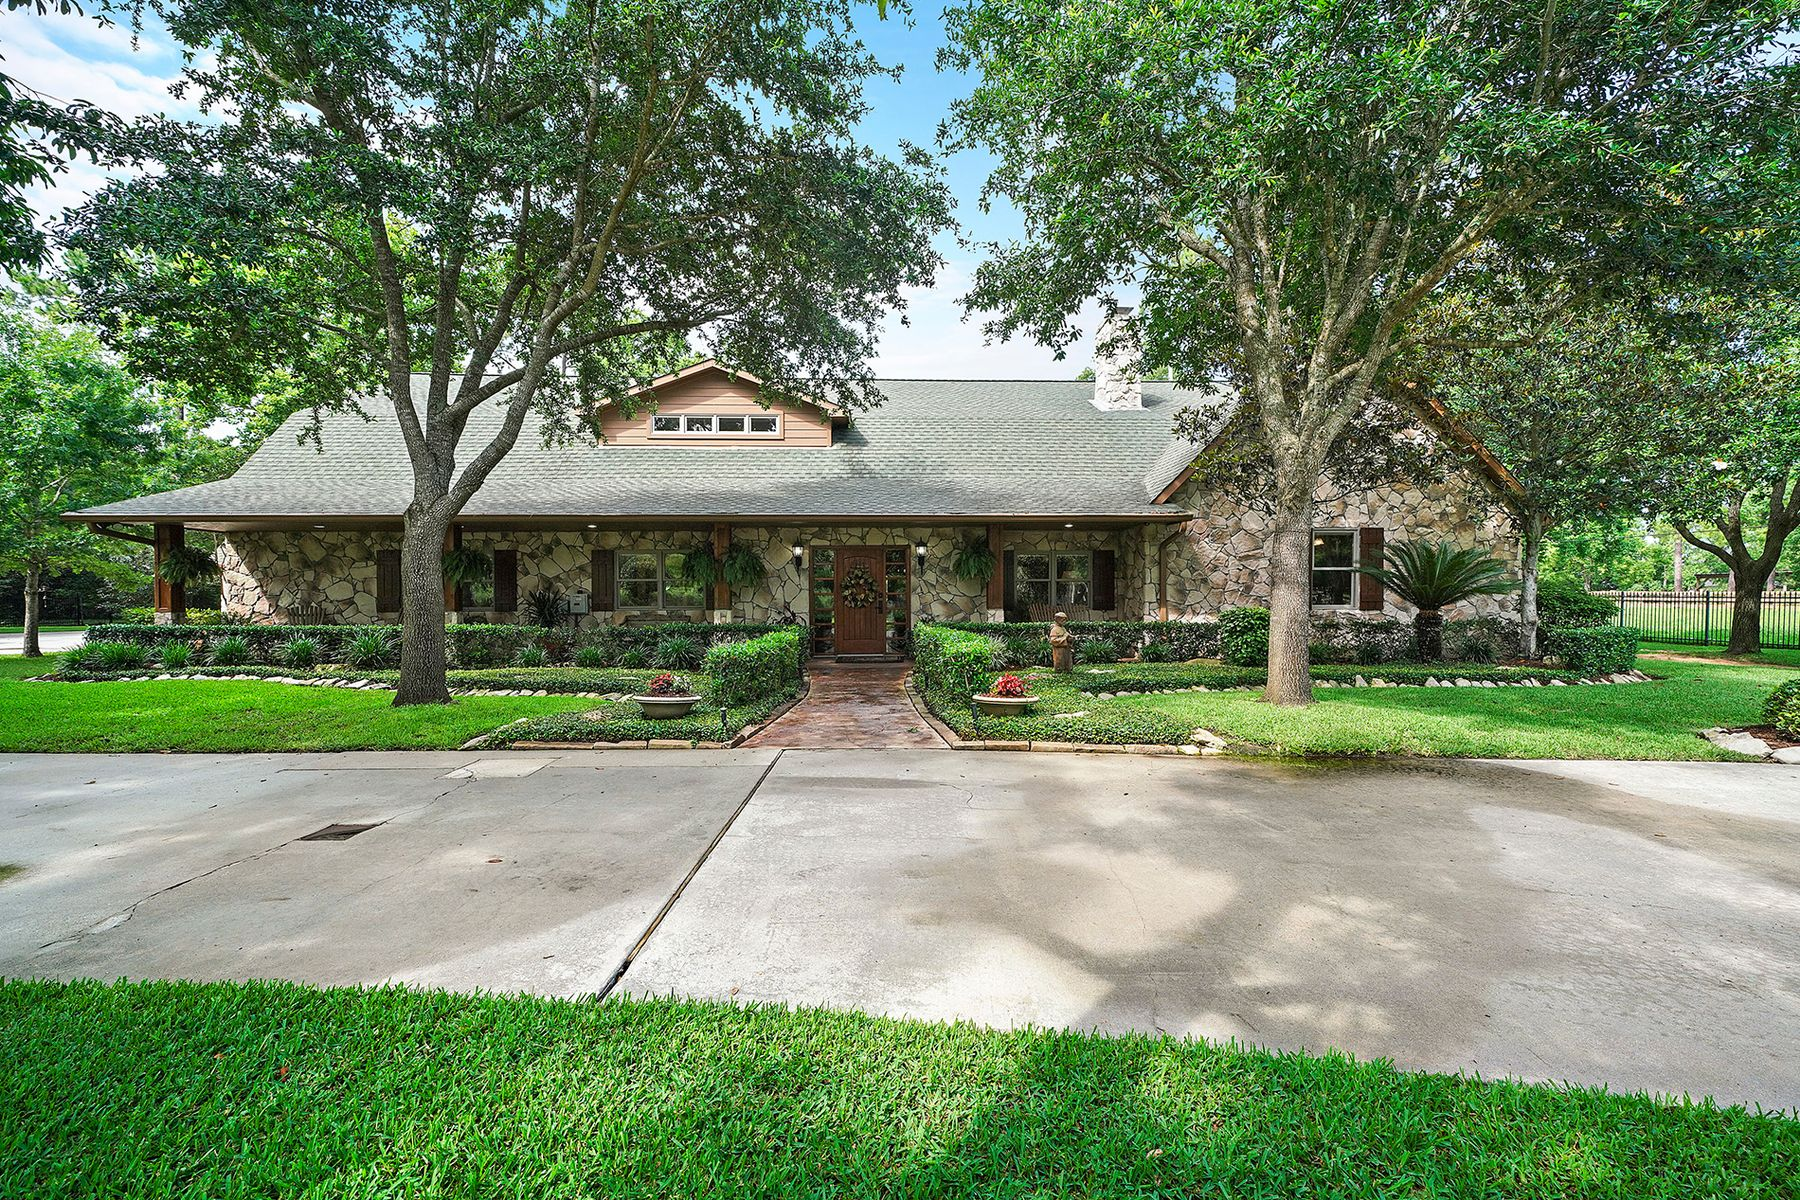 Granjas y ranchos En venta Friendswood, Texas 915 Melody Lane